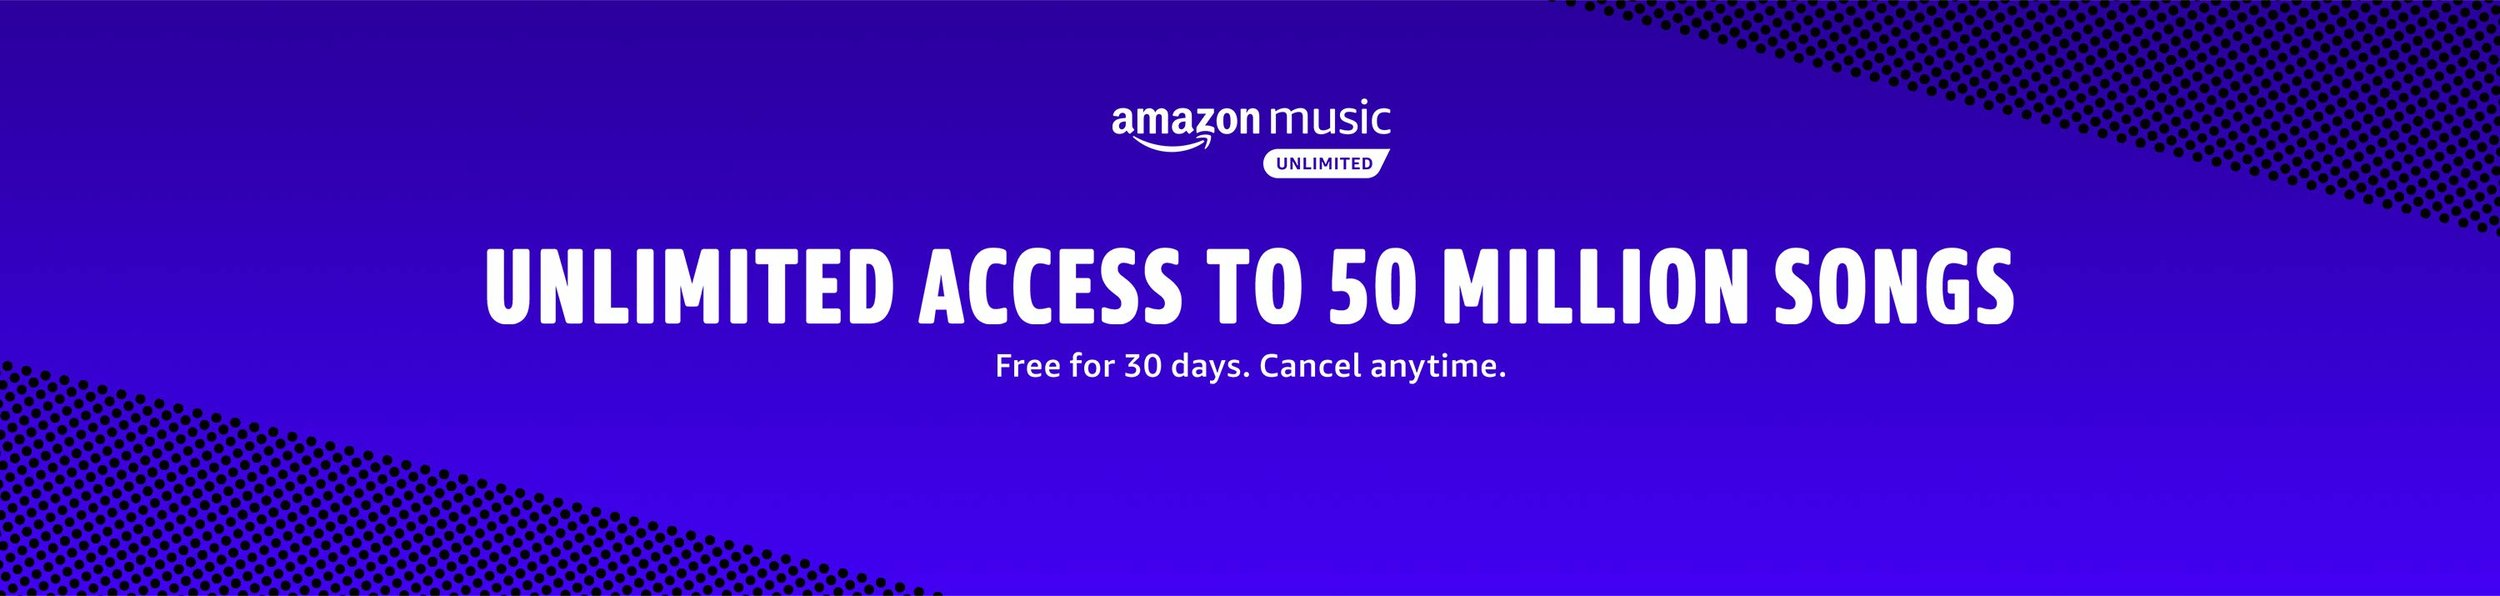 Prime subscriber? Check out Amazon Music Unlimited. Free versions available for Prime members and Spotify/Apple music alternative paid plans available after your free trial.  Sign up on Amazon.